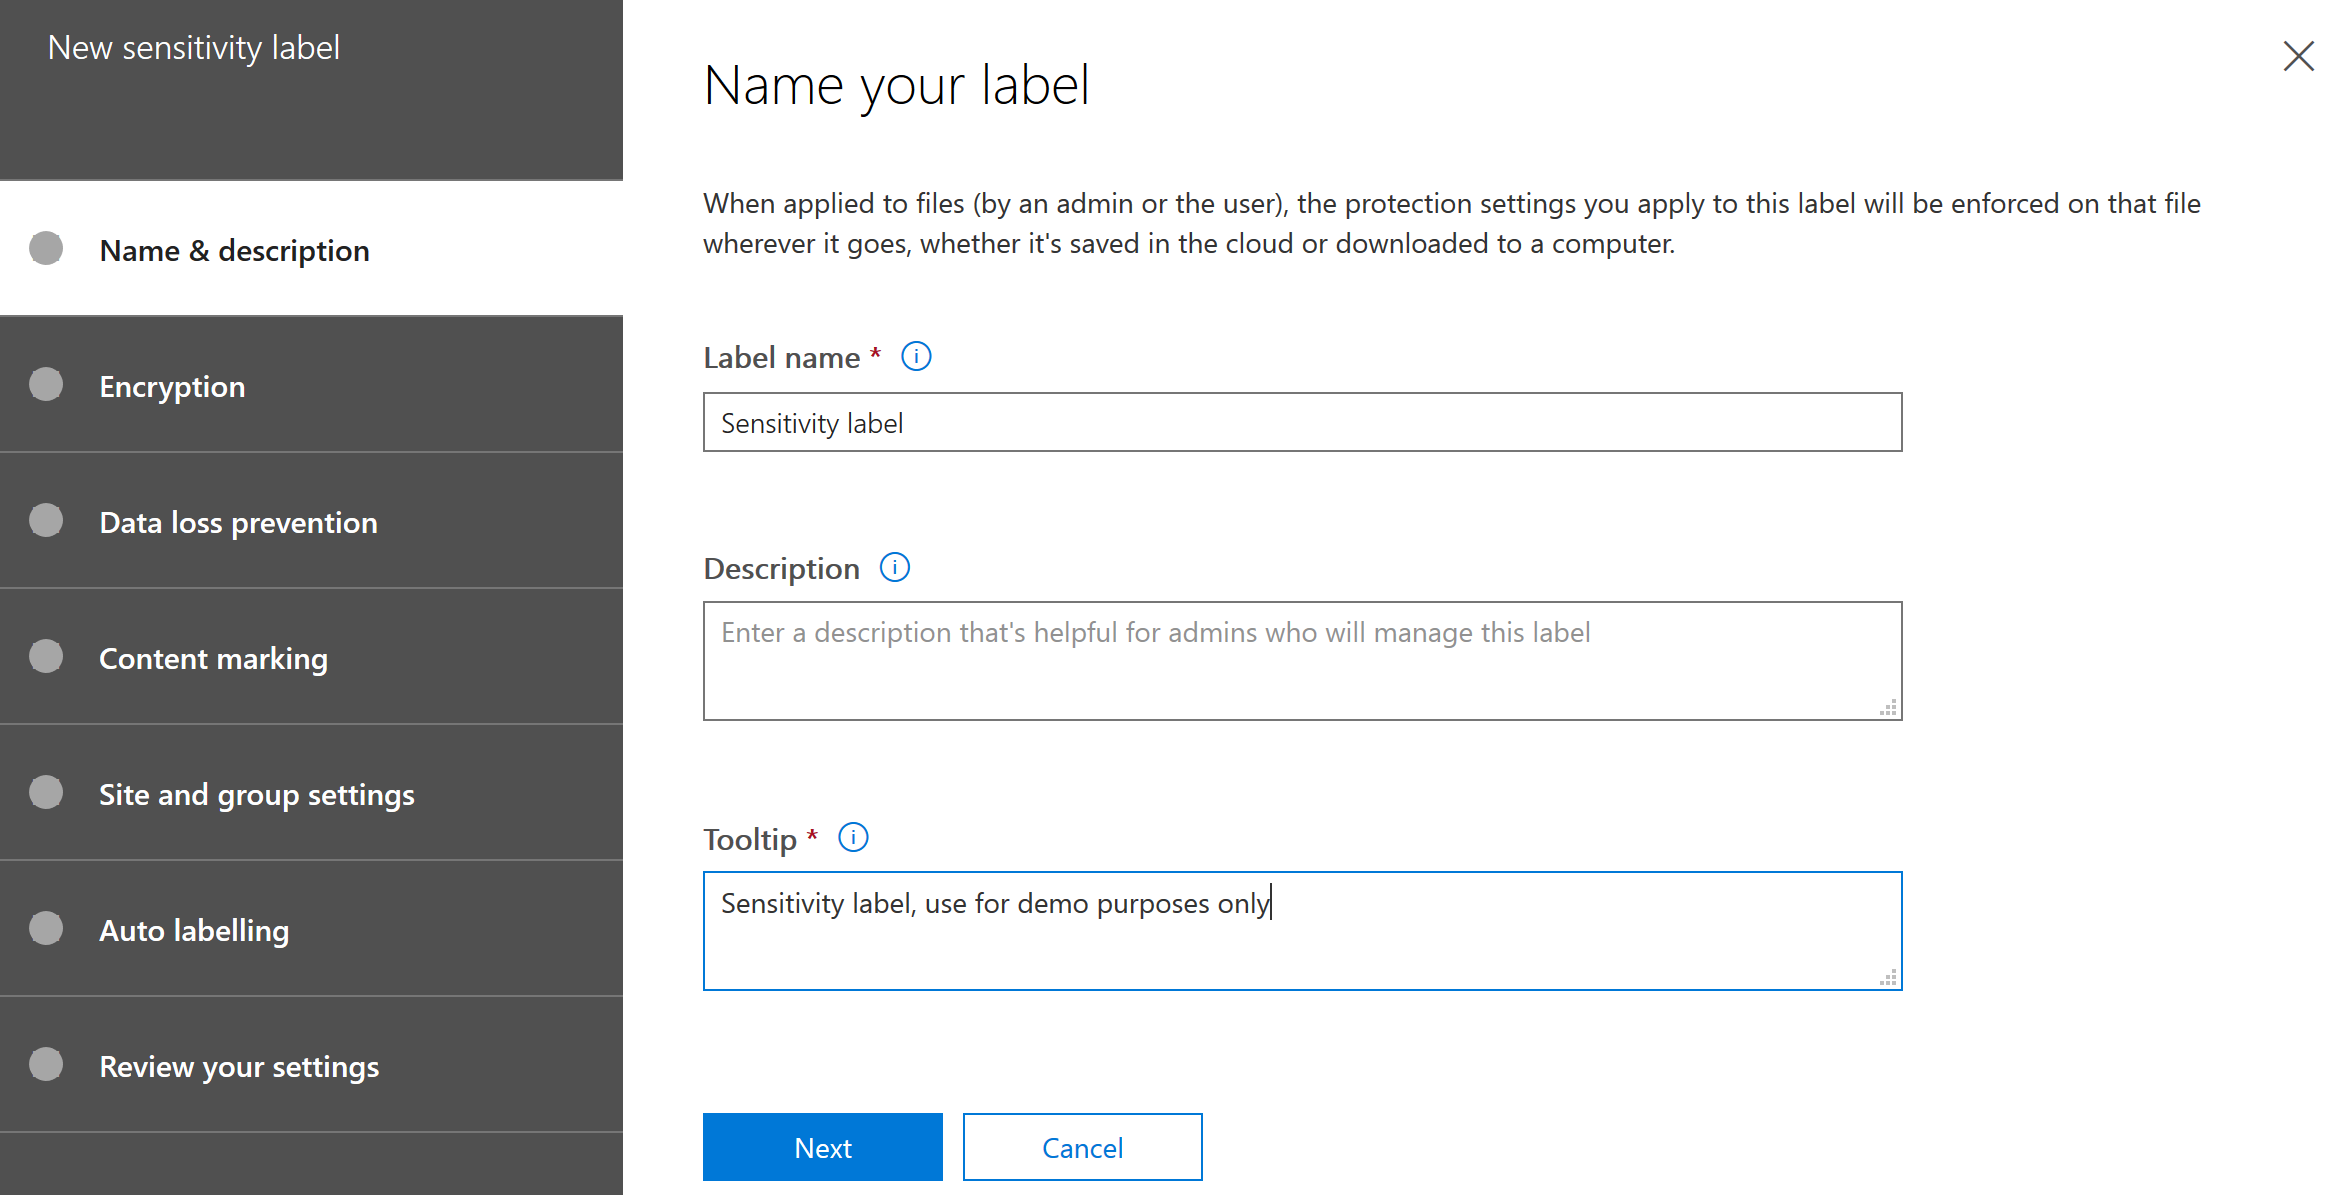 microsoft-information-protection-sensitivity-labels-page-1